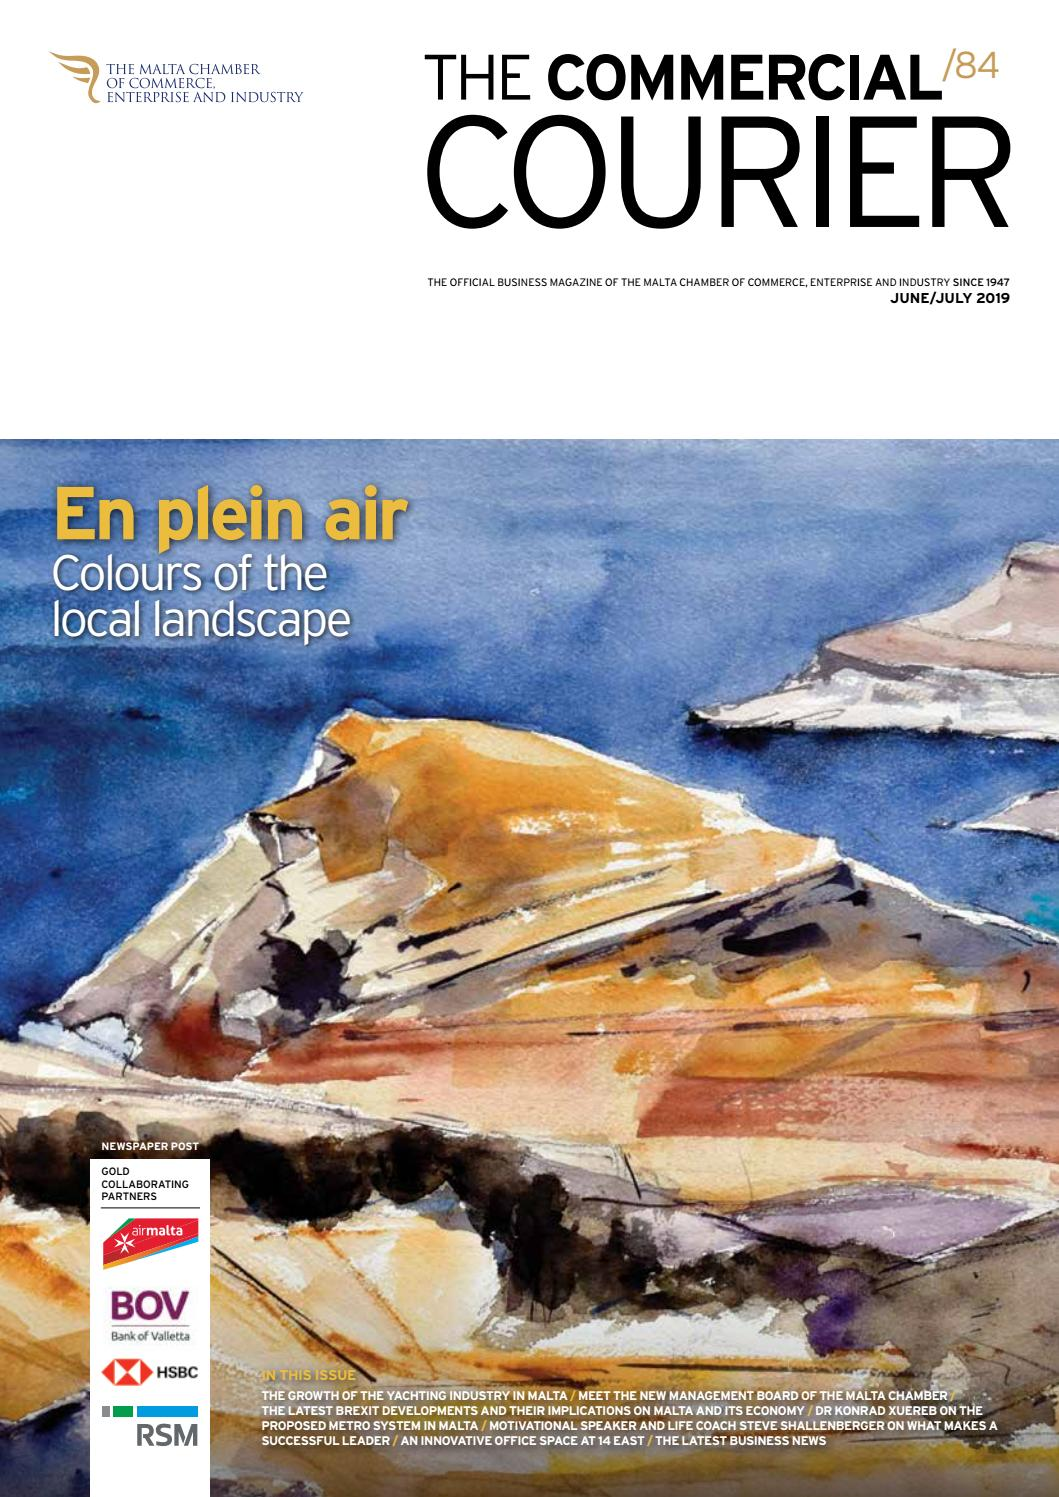 The Commercial Courier June/July 2019 by Content House Group